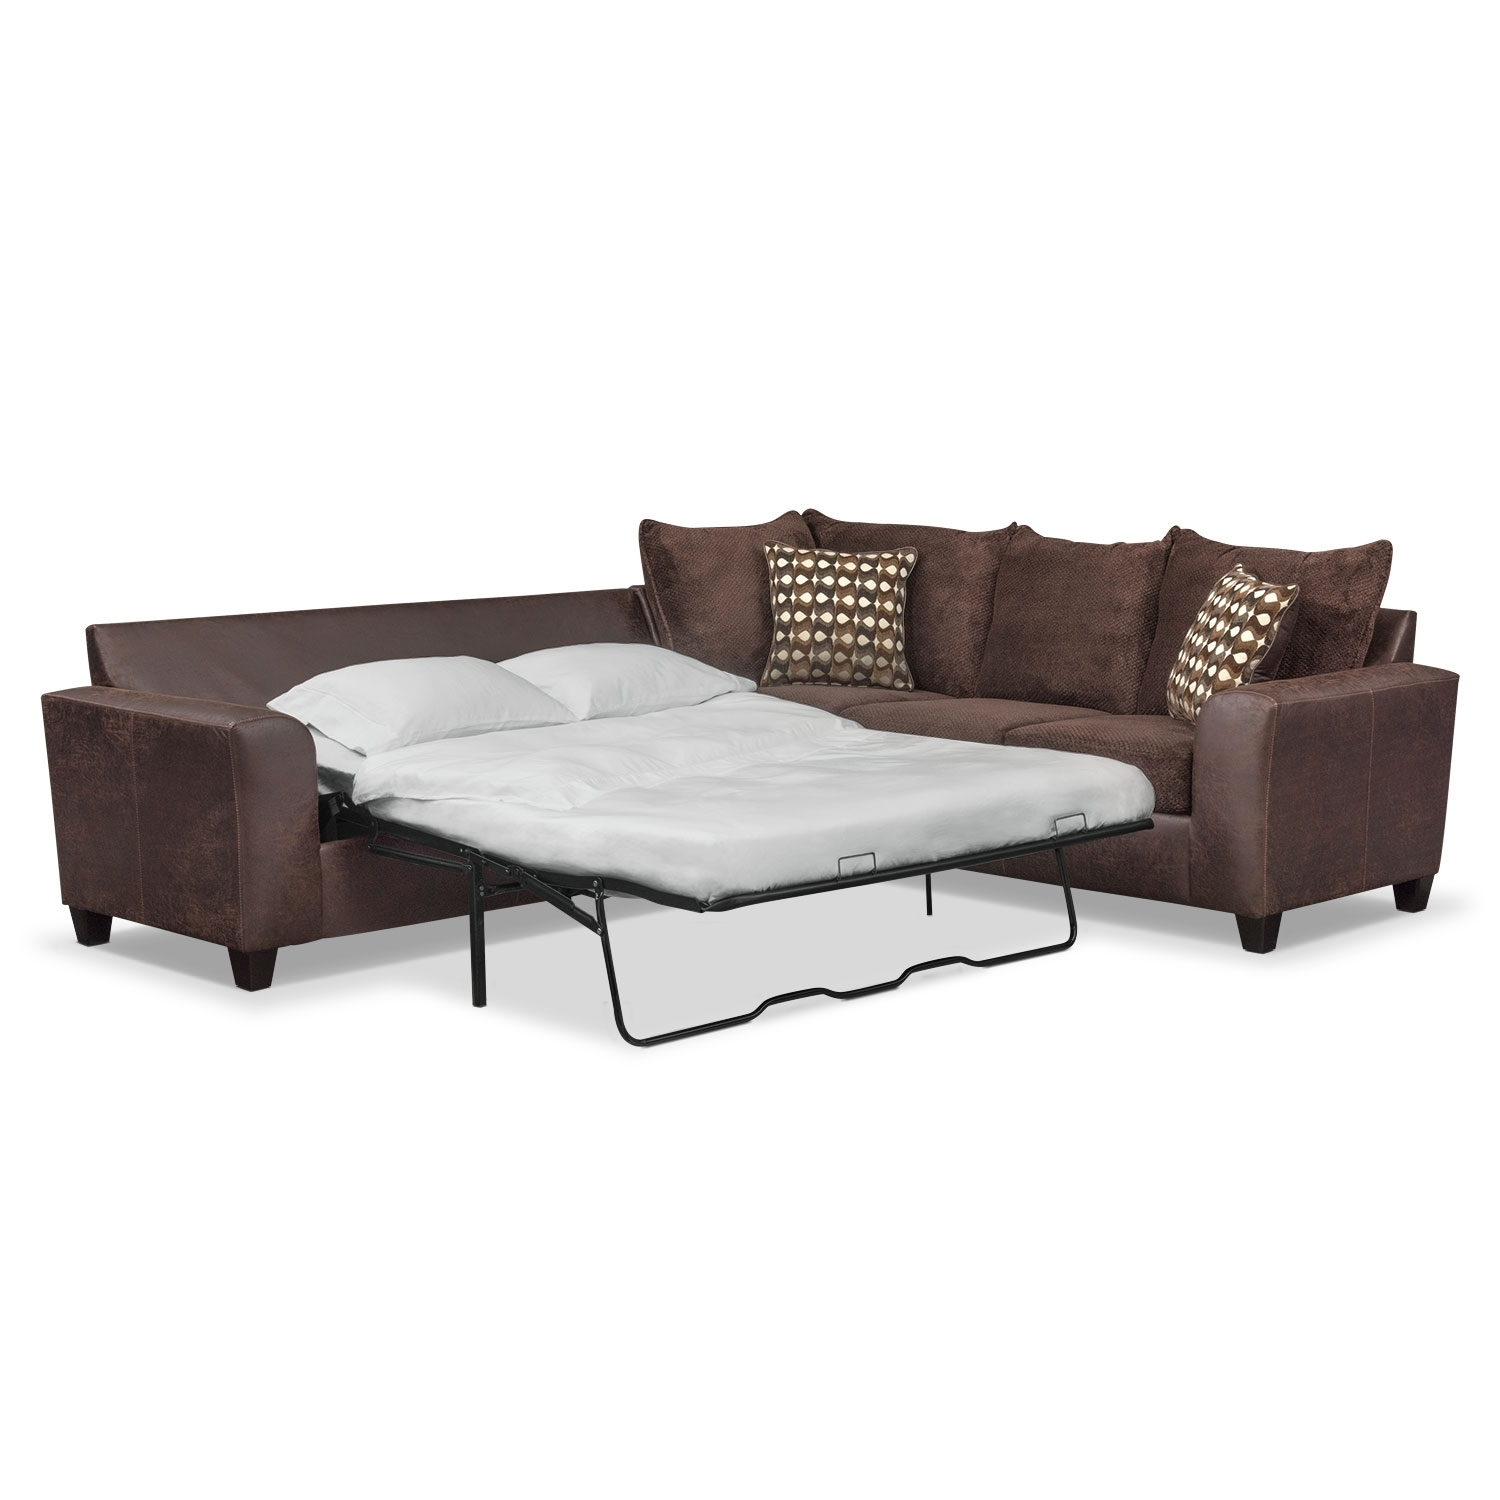 Brando 2-Piece Innerspring Sleeper Sectional - Chocolate | American intended for Aurora 2 Piece Sectionals (Image 11 of 30)